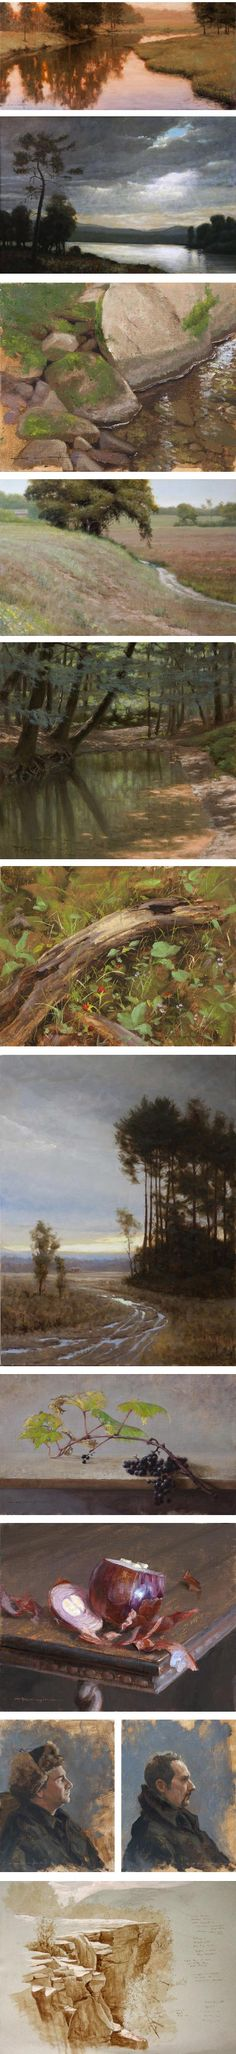 Thomas Kegler is a painter from Western New York State. Largely self-taught, Kegler was drawn to the traditional techniques of realist painting, and in particular the approach of the Hudson River School and their reverence for the beauty of the natural world.